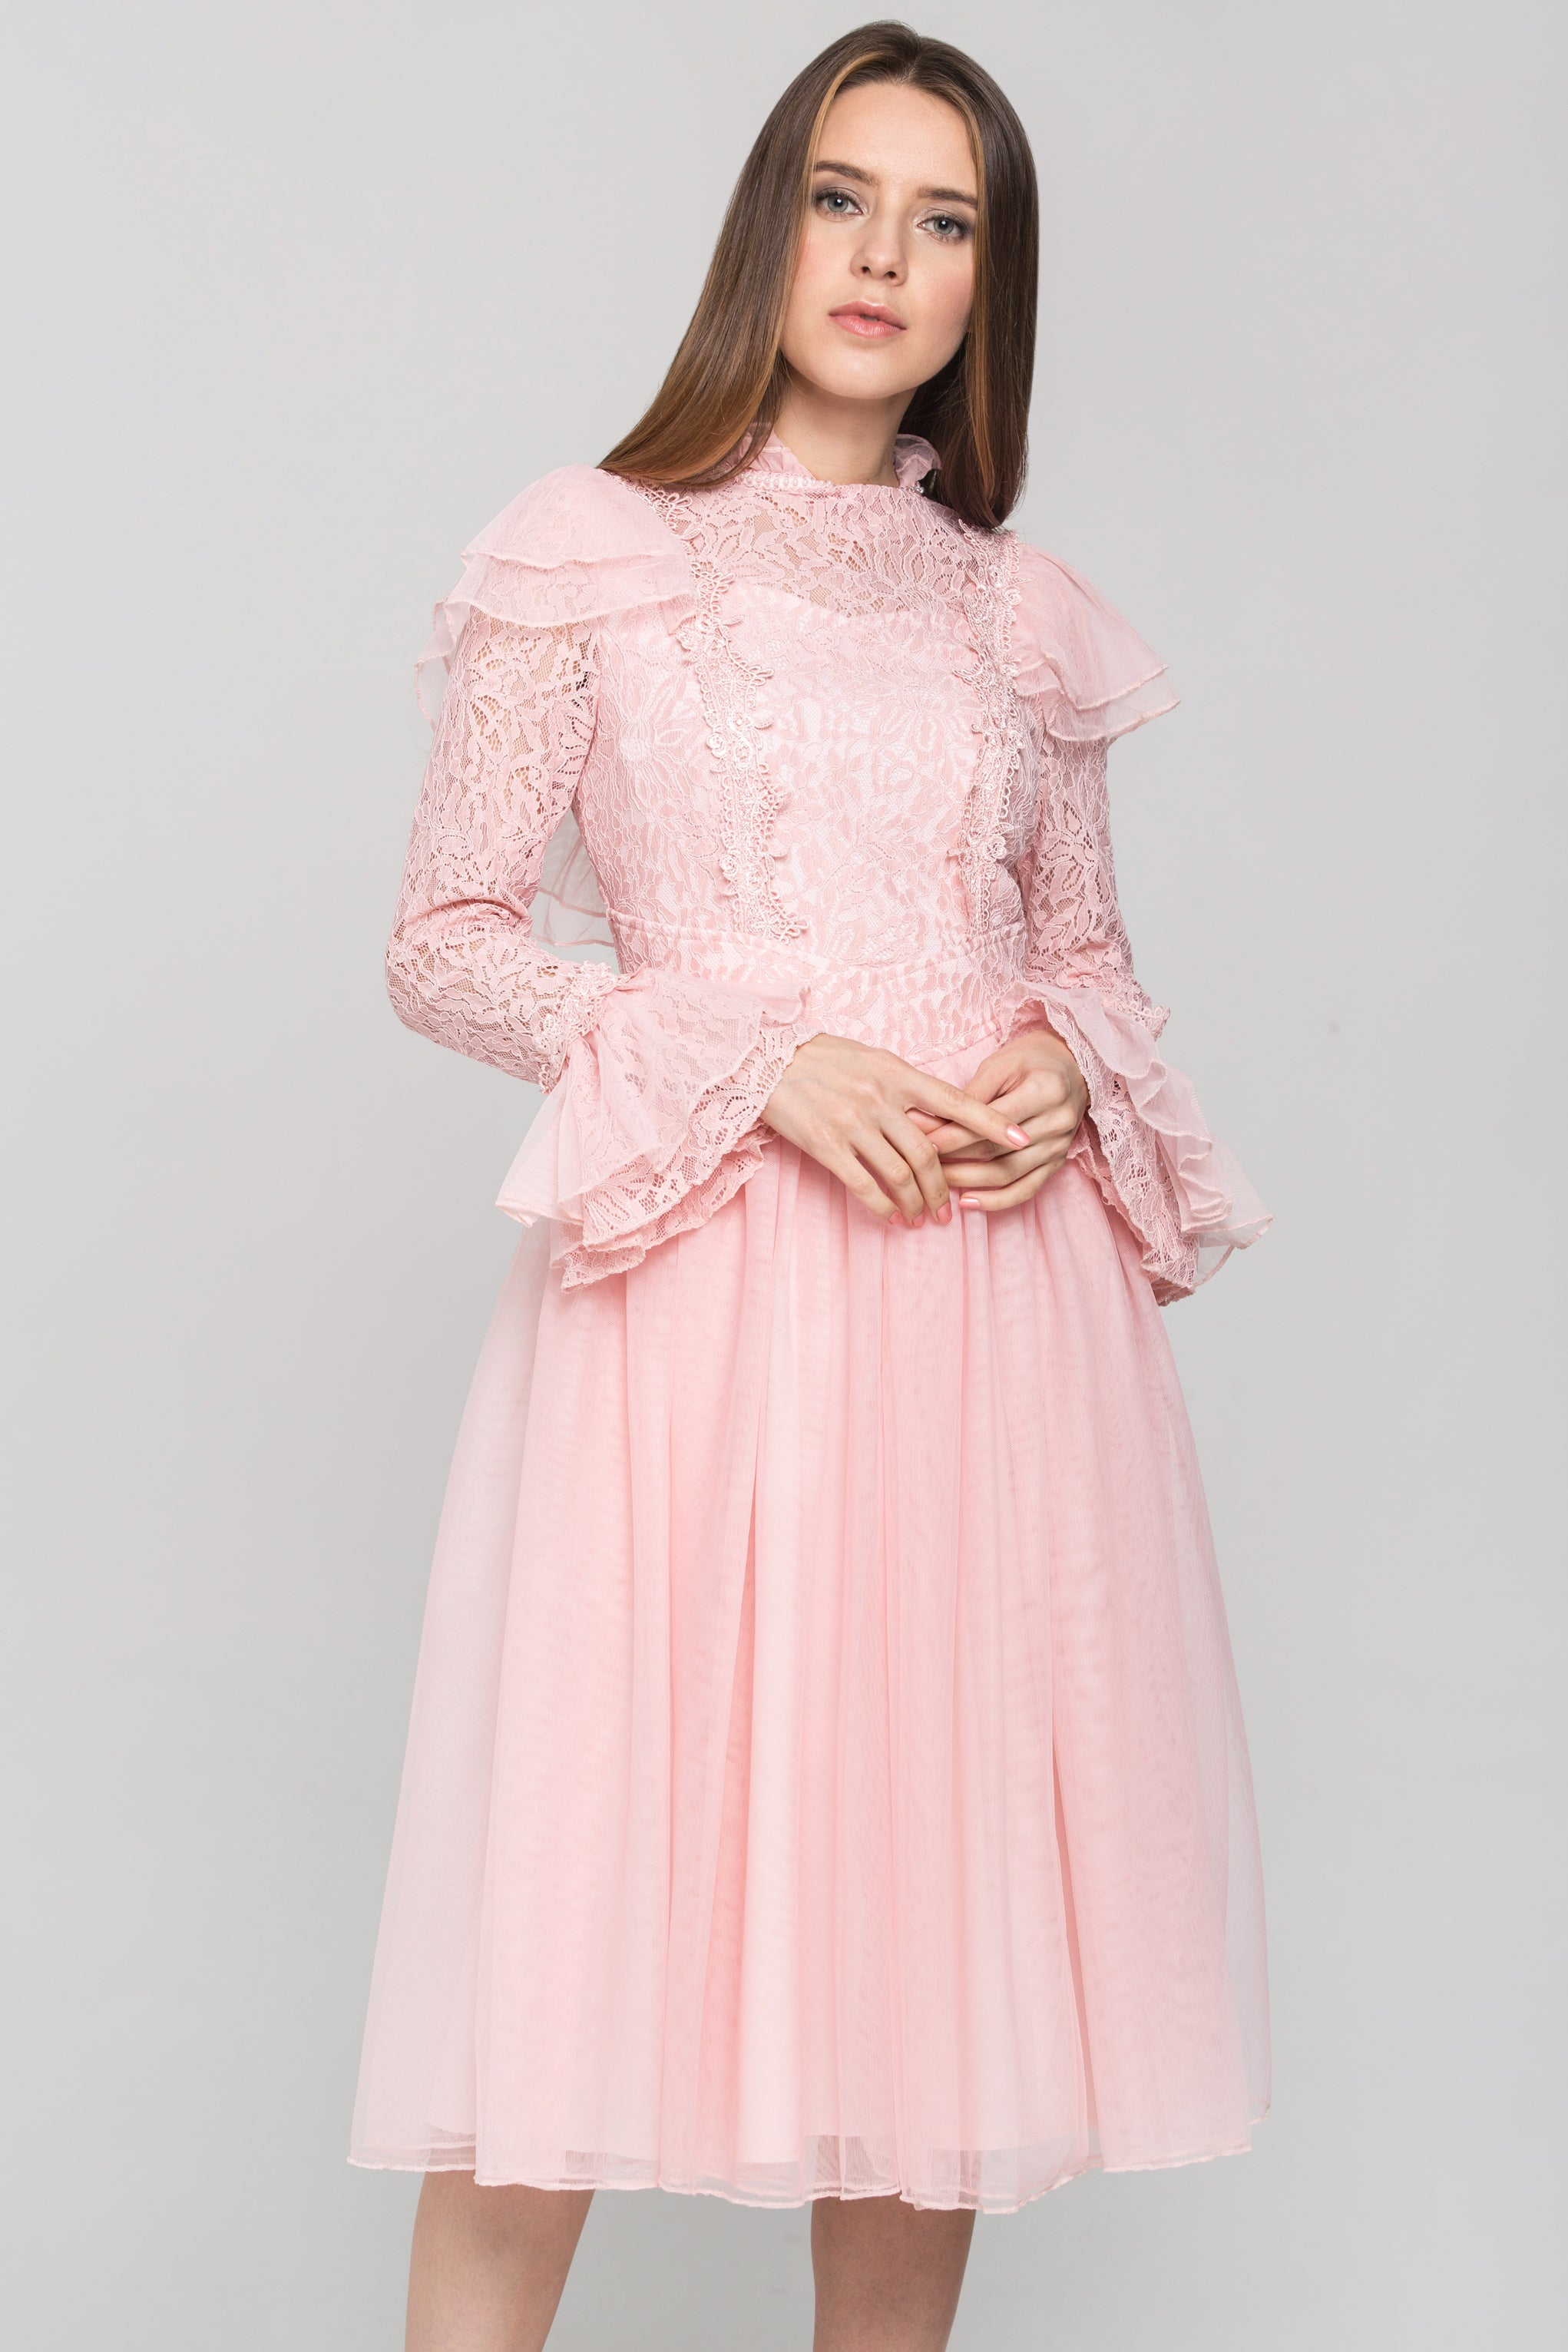 ad1663feeed82 Pink Vintage Ruffle Lace Midi Dress – OwnTheLooks